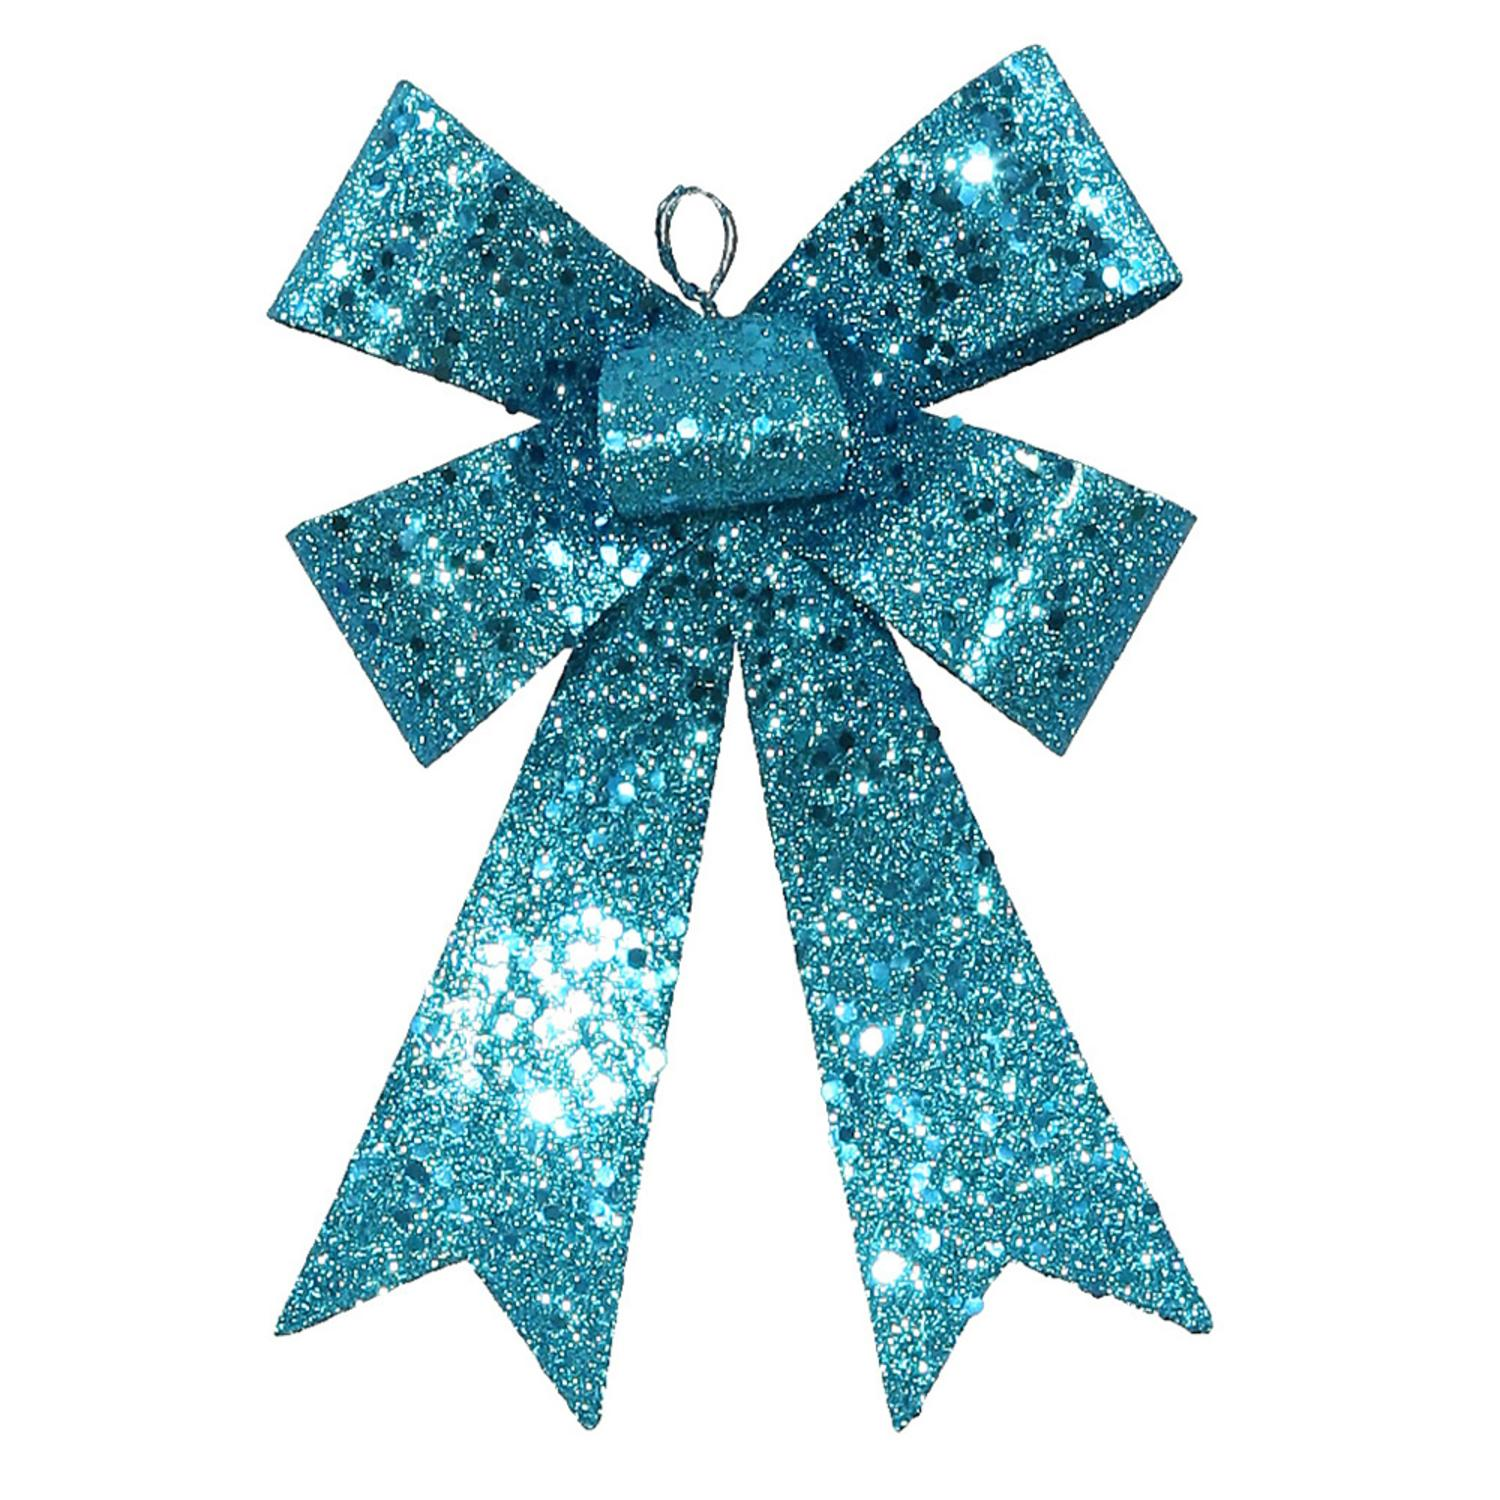 "Vickerman 7"" Sequin and Glitter Bow Christmas Ornament - Turquoise Blue"